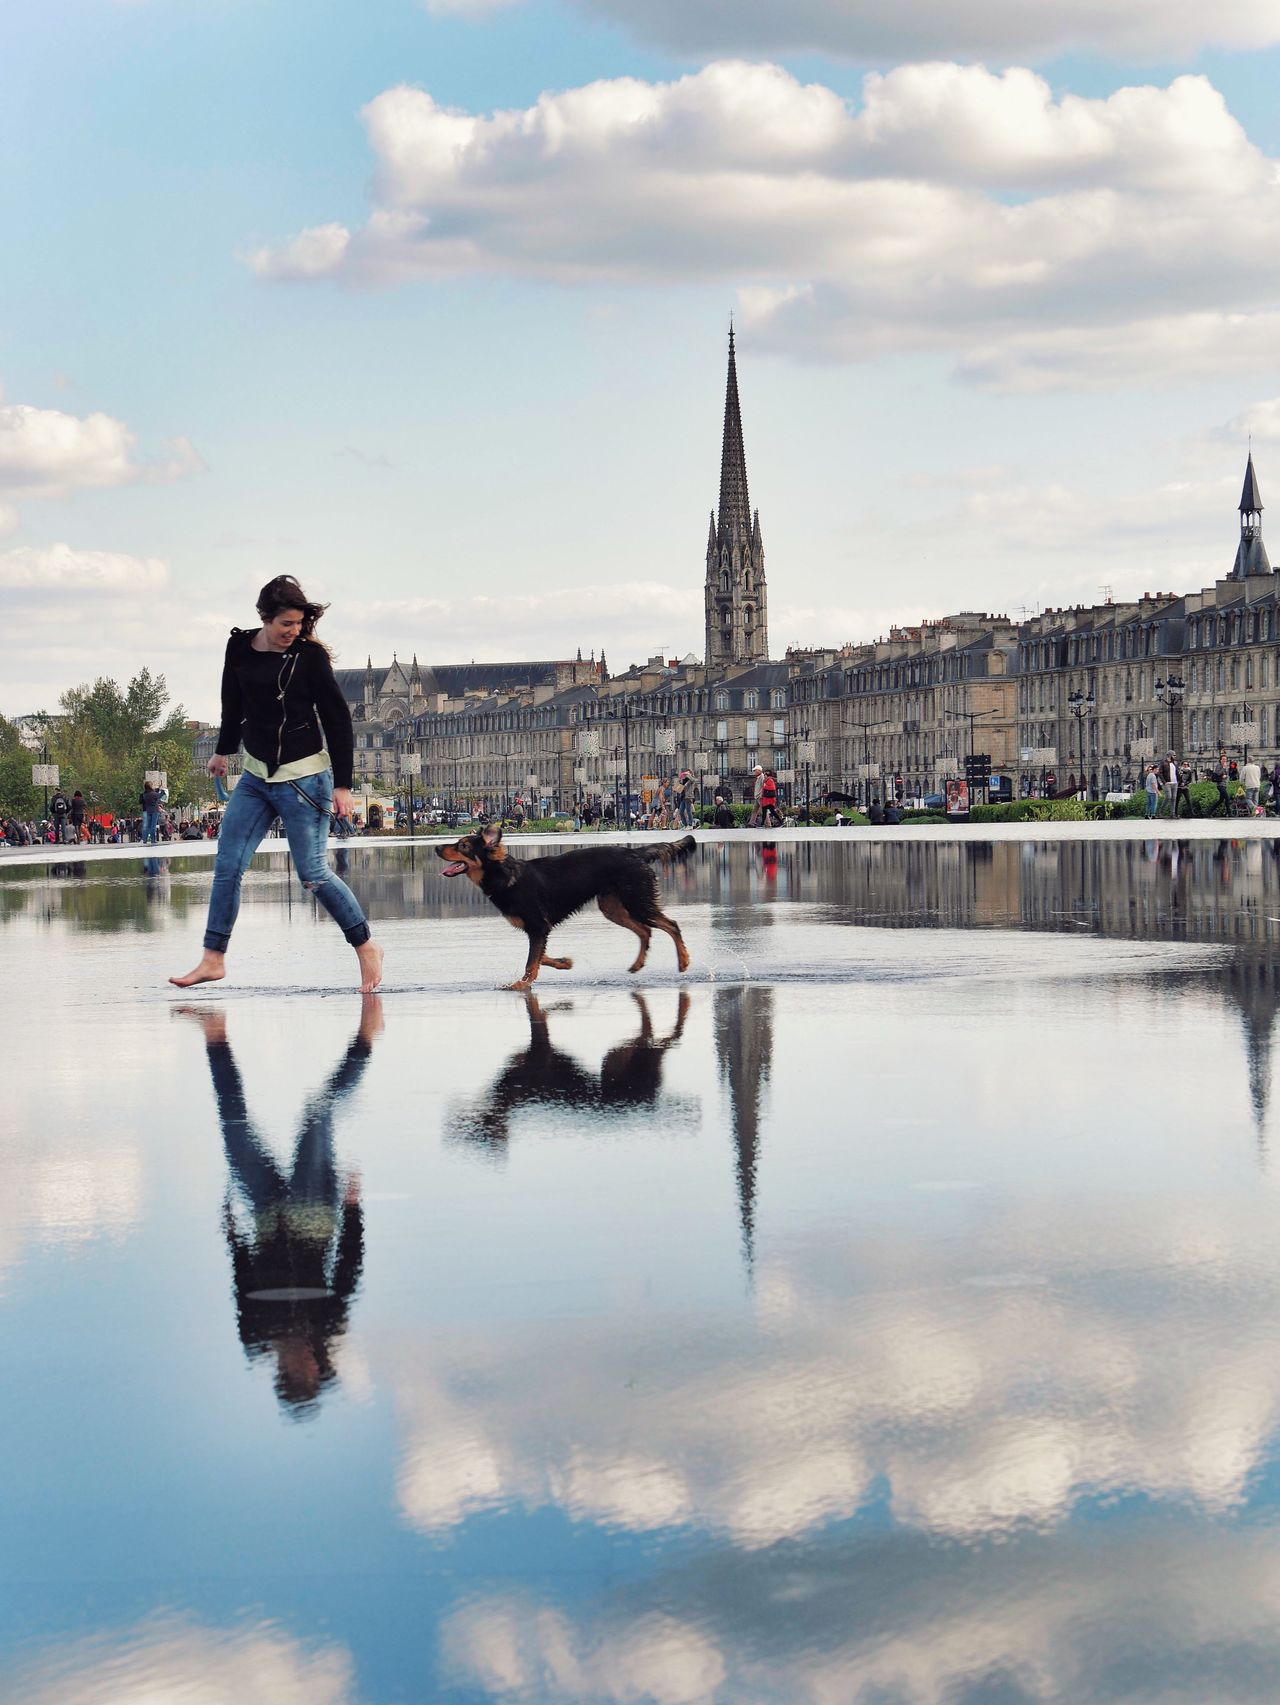 Beautiful stock photos of hunde, water, reflection, real people, sky